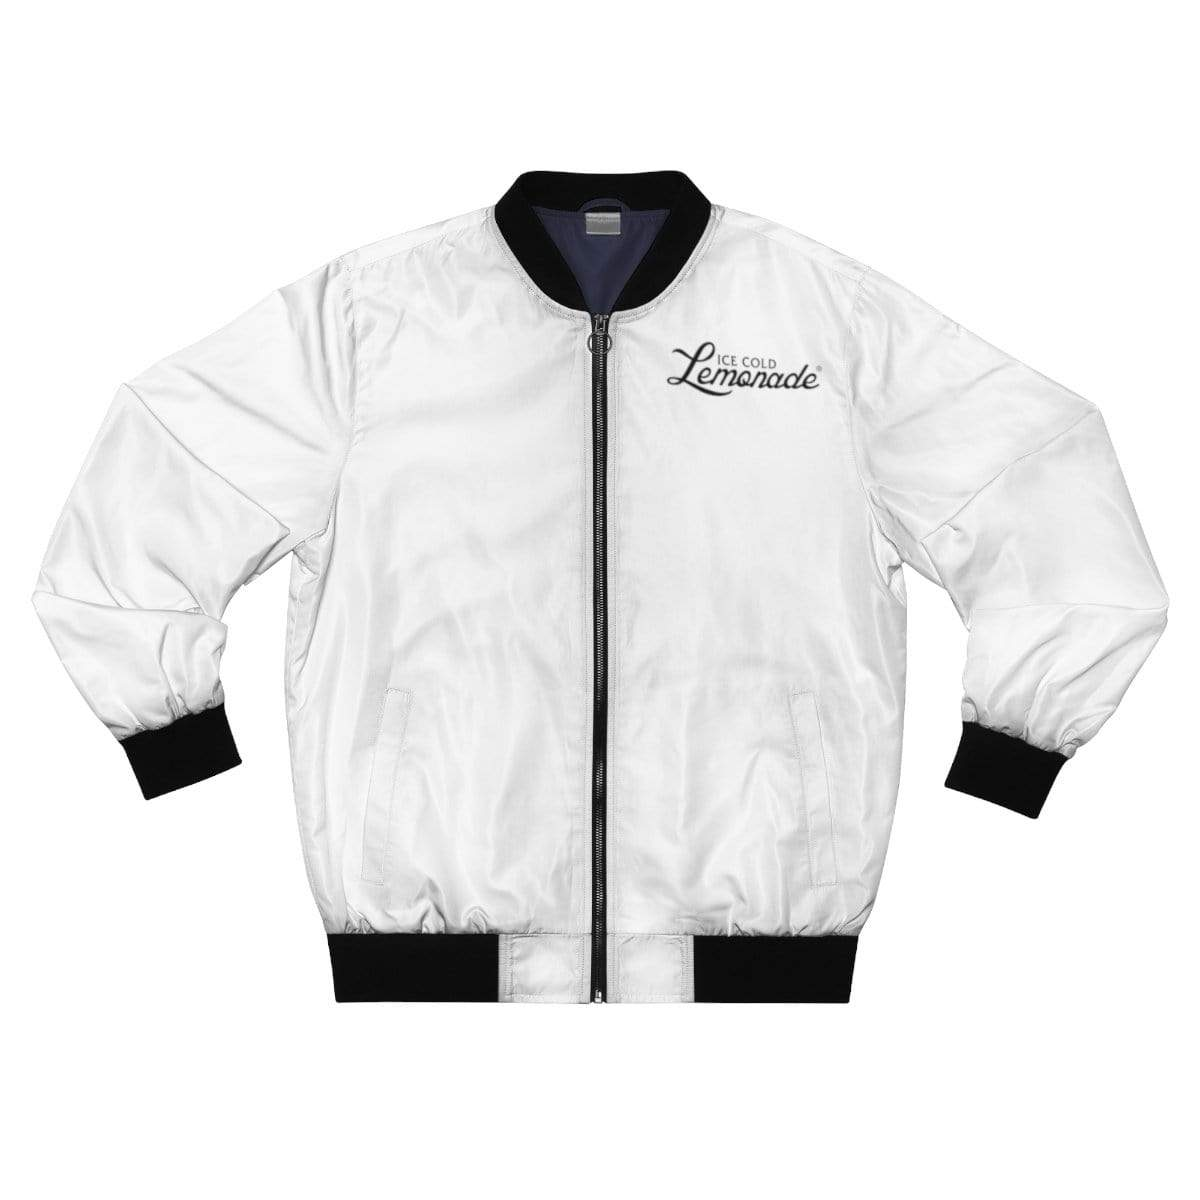 Ice Cold Lemonade Bomber Jacket - Ice Cold Lmnd Ice Cold Lemonade Bomber Jacket